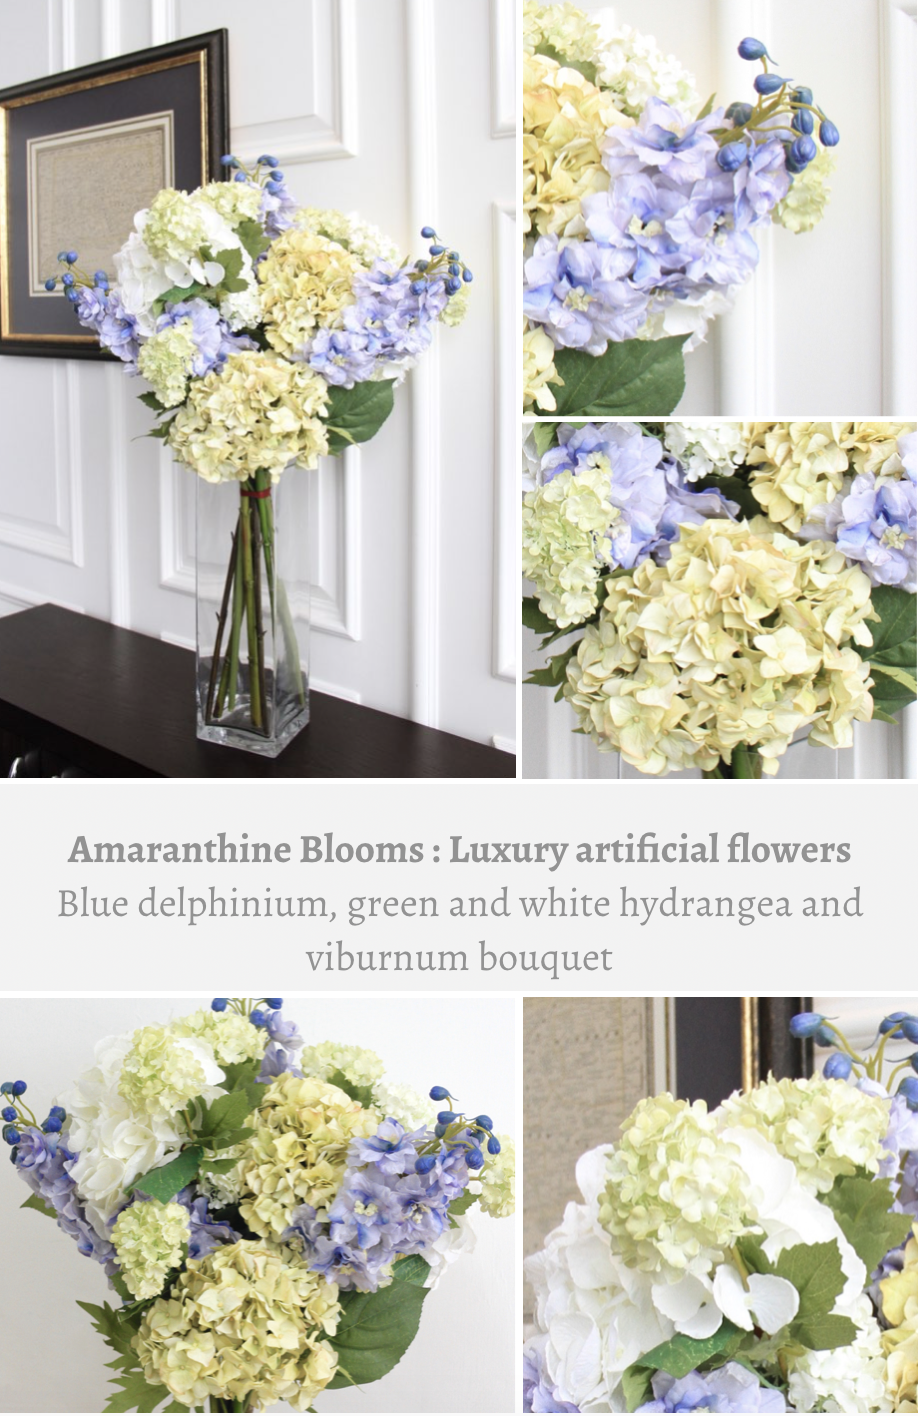 Luxury artificial flowers from Amaranthine Blooms are the